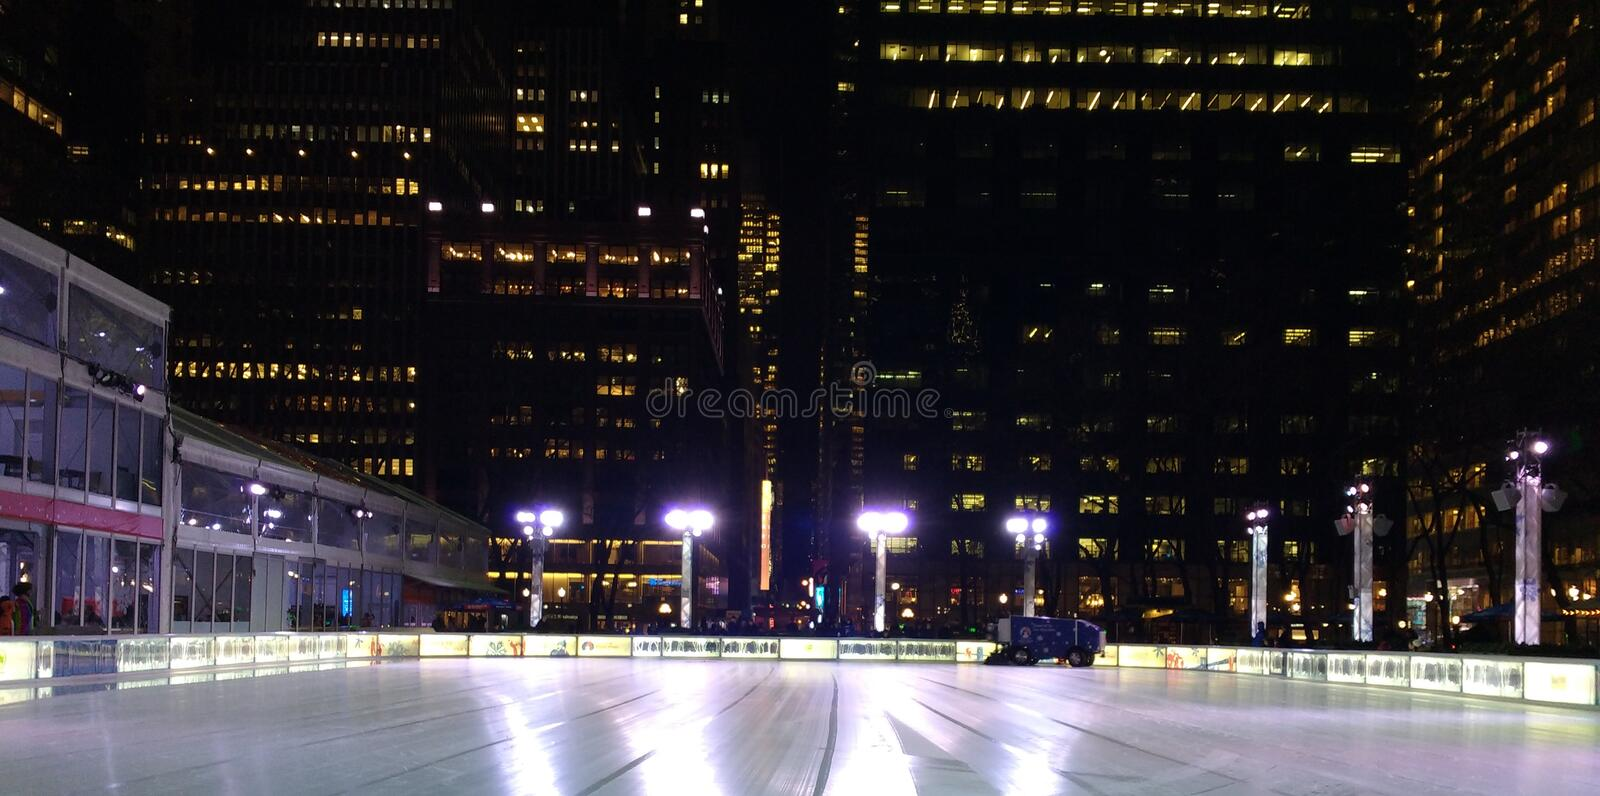 Zamboni reblanchissant la piste de patinage de glace au village d'hiver chez Bryant Park, horizon de New York City la nuit, NYC,  photographie stock libre de droits